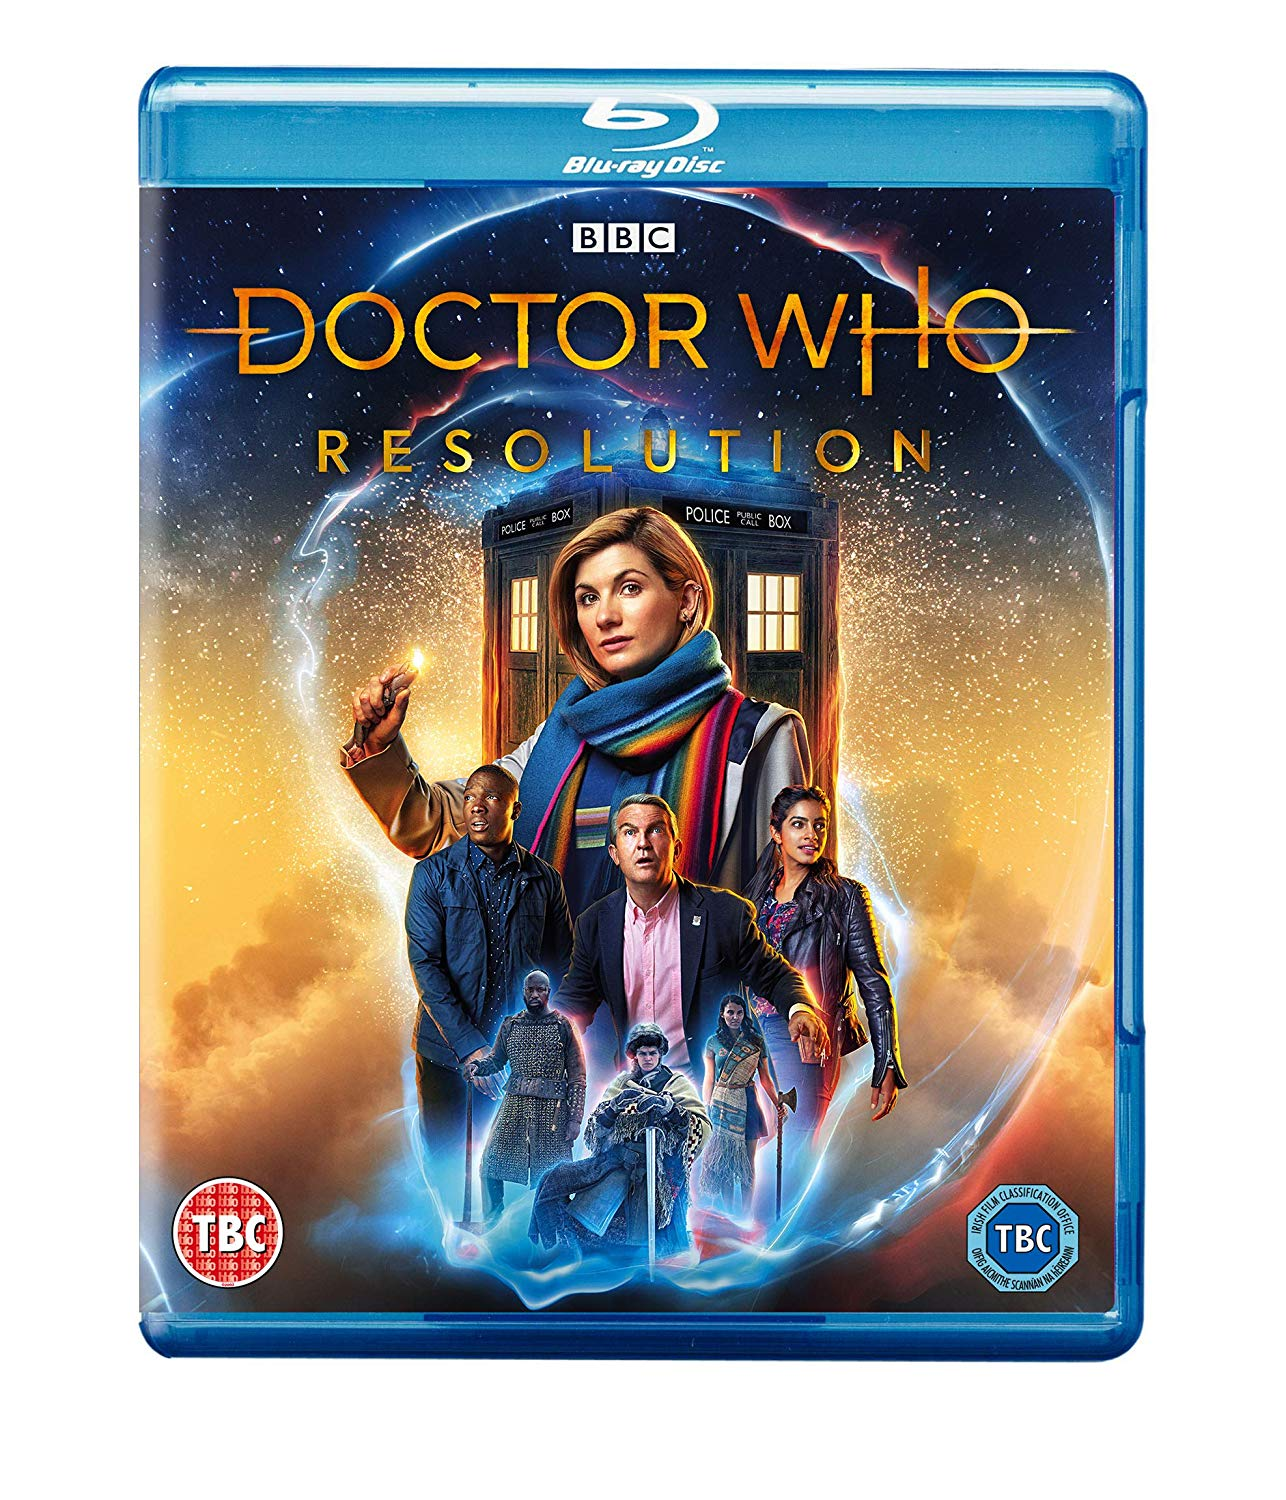 Doctor Who: Resolution - Chris Chibnall [BLU-RAY]